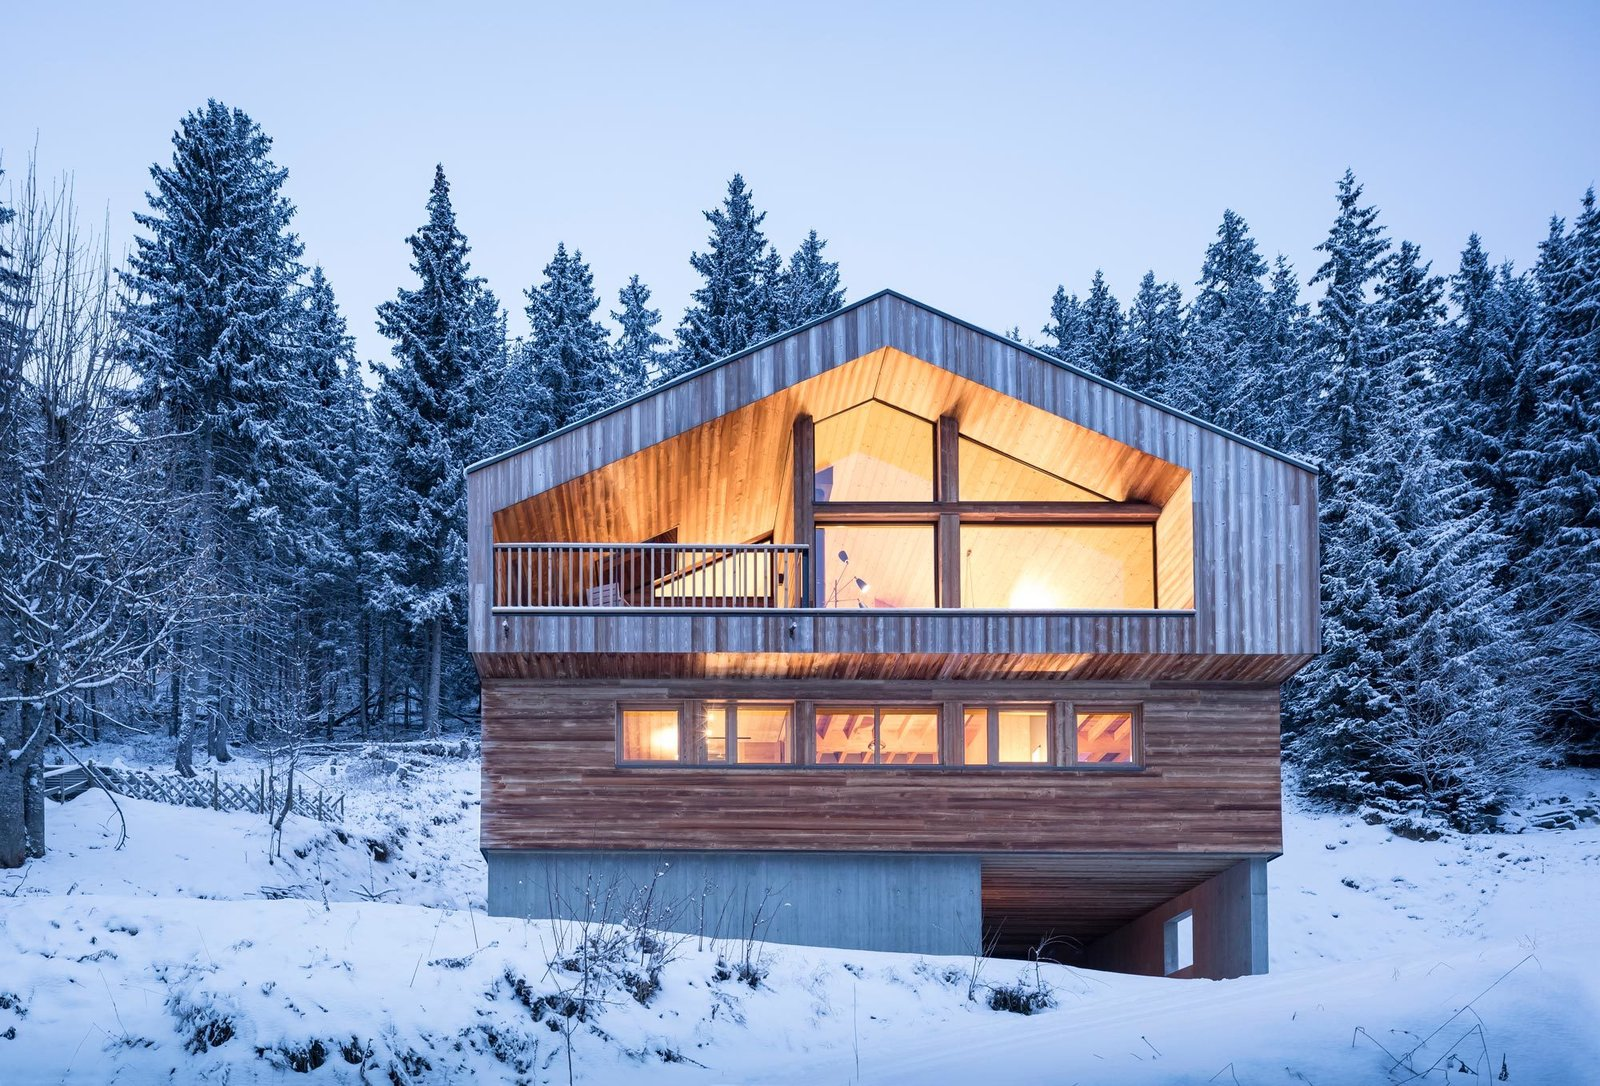 Exterior, Cabin Building Type, House Building Type, Gable RoofLine, Wood Siding Material, and Metal Roof Material The base of this cabin is constructed out of cast-in-place concrete with formwork using the same wood as the floor cladding above.